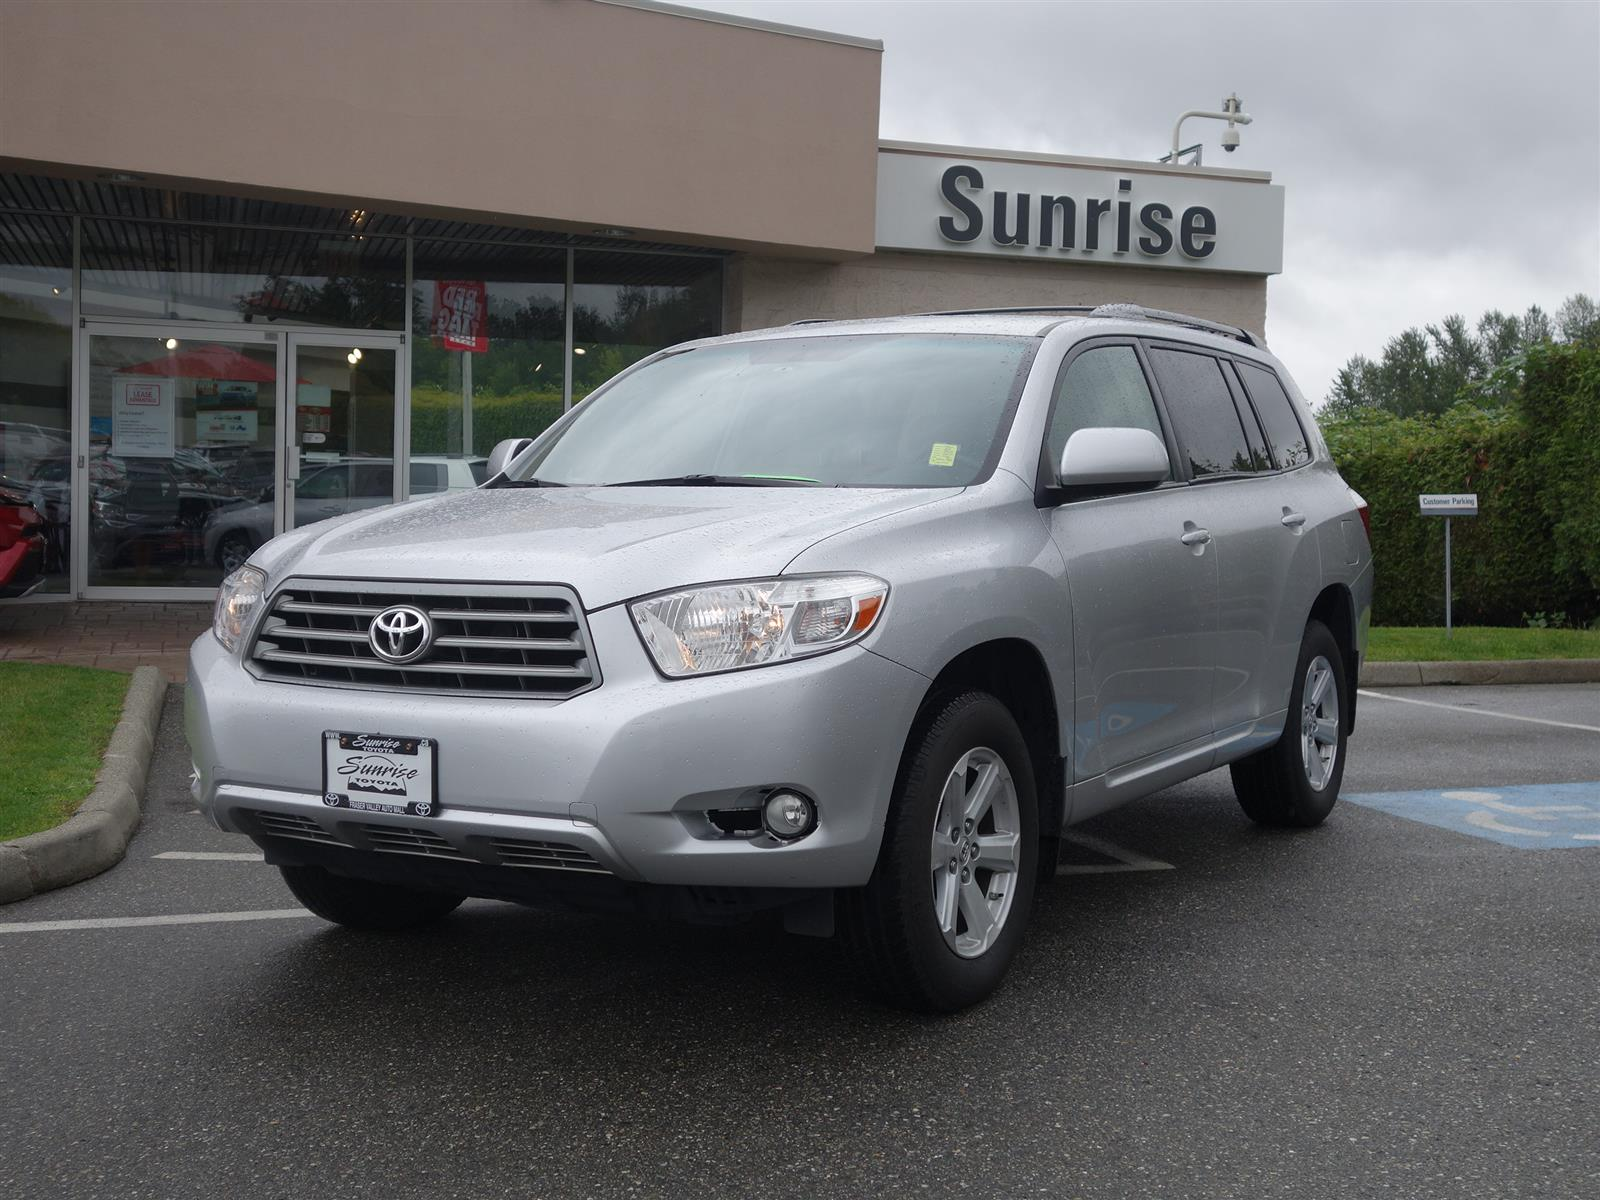 power windows pre owned 2011 toyota highlander for sale autos post. Black Bedroom Furniture Sets. Home Design Ideas